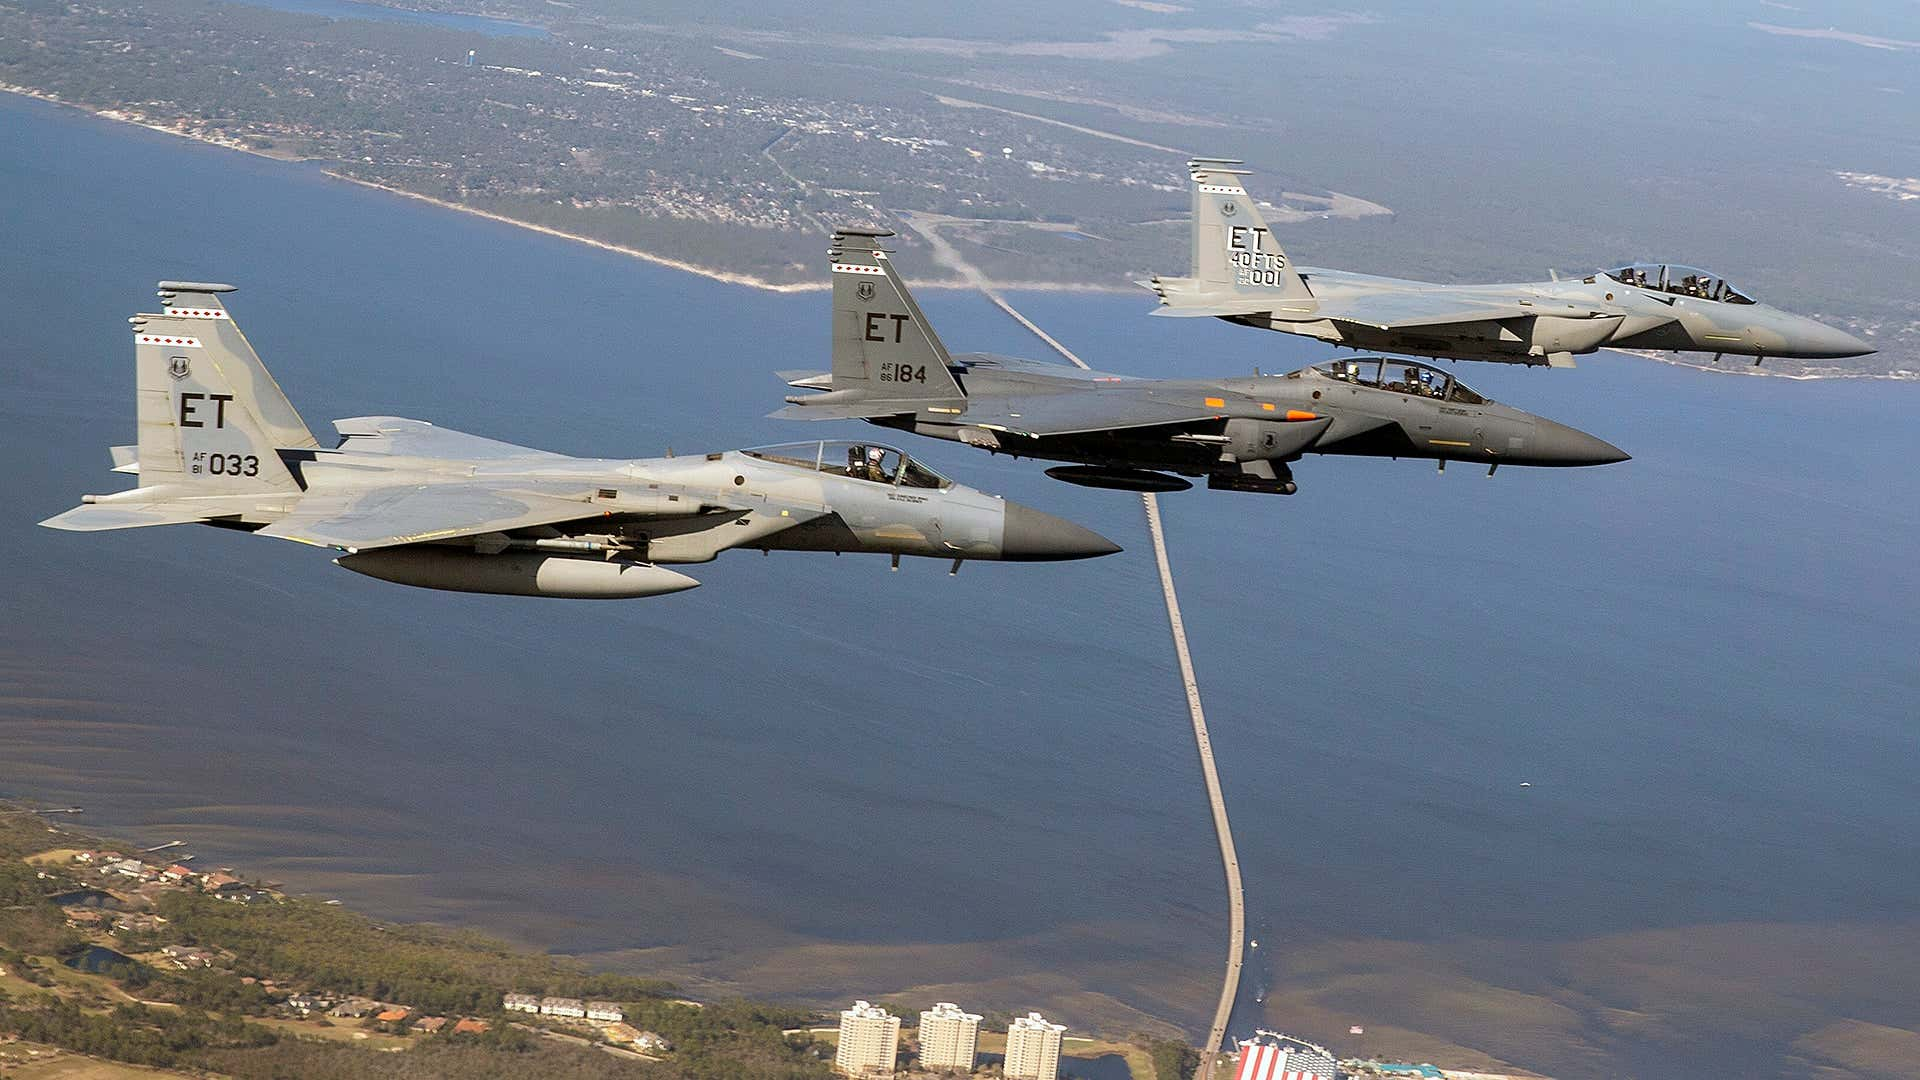 USAF F-15C/D, F-15E, and F-15EX, side-by-side.